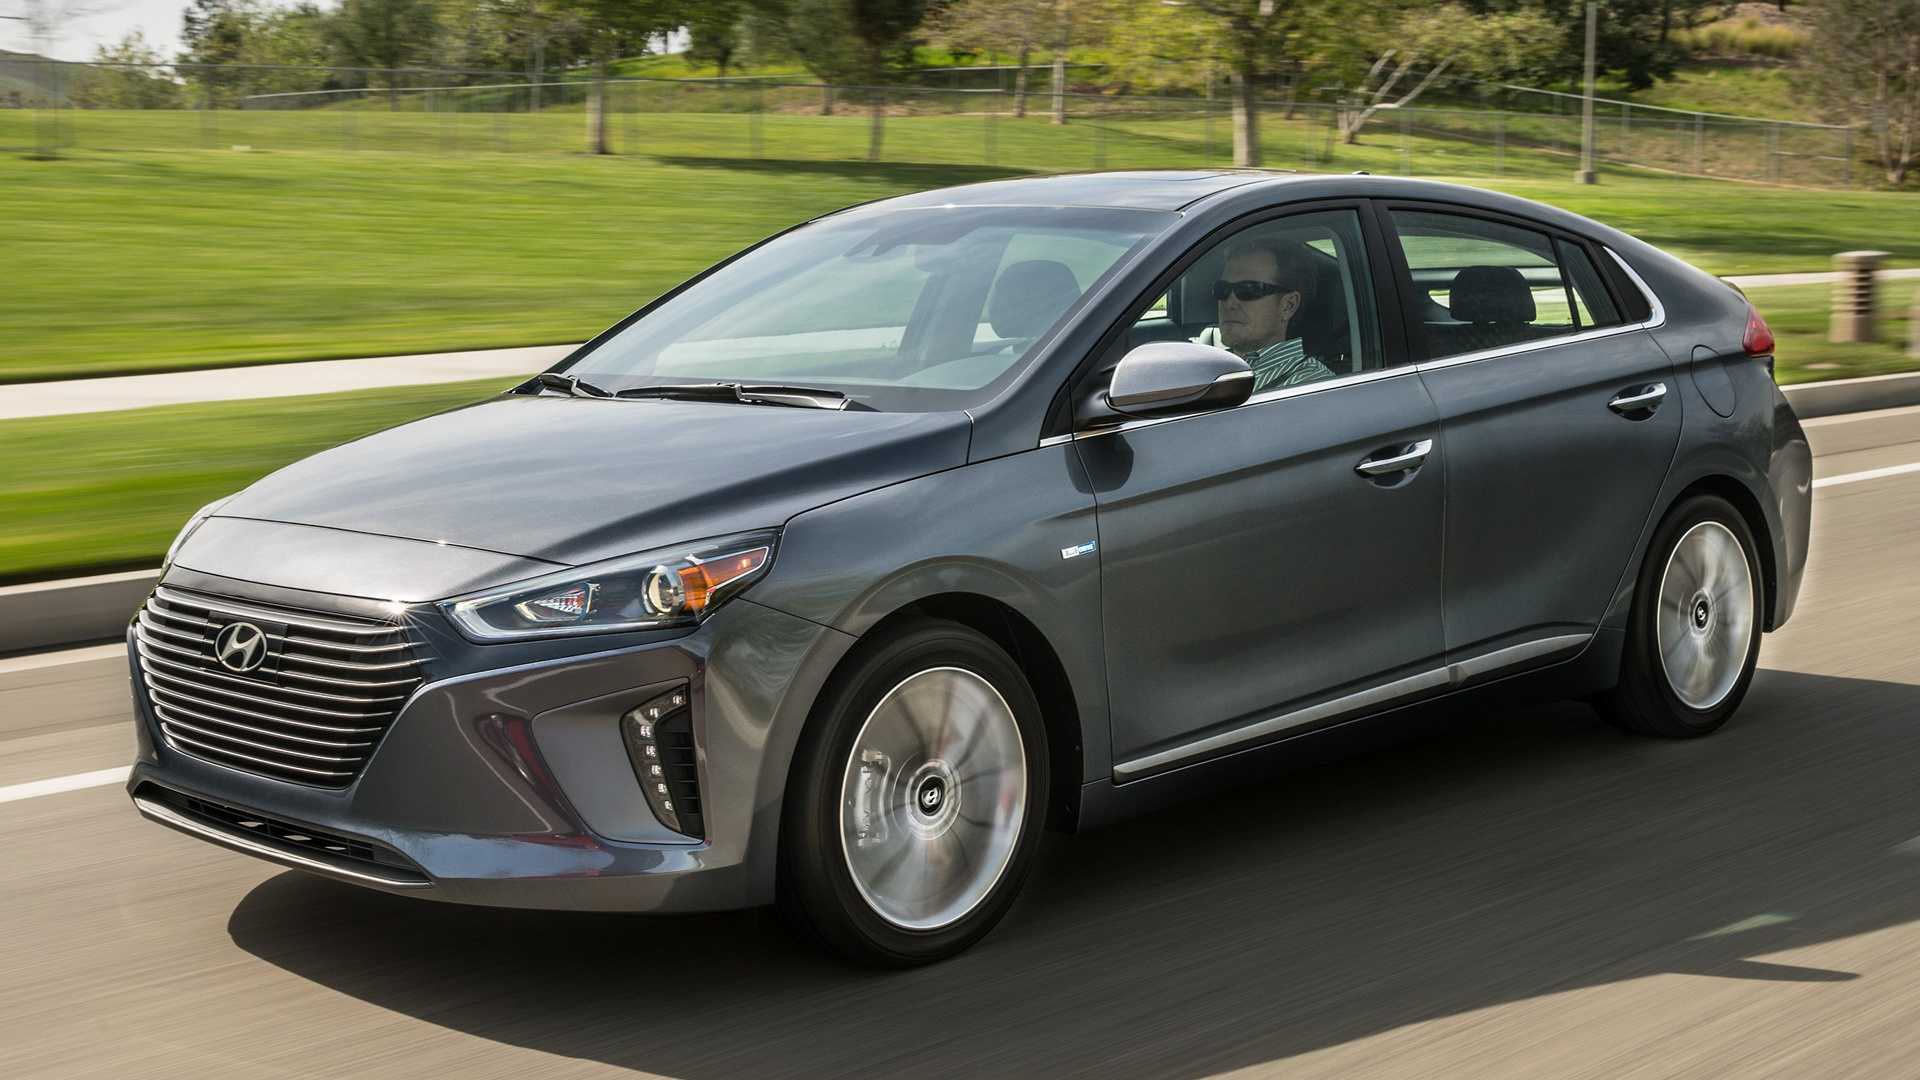 hyundai ioniq hybrid 2017 us wallpapers and hd images car pixel. Black Bedroom Furniture Sets. Home Design Ideas